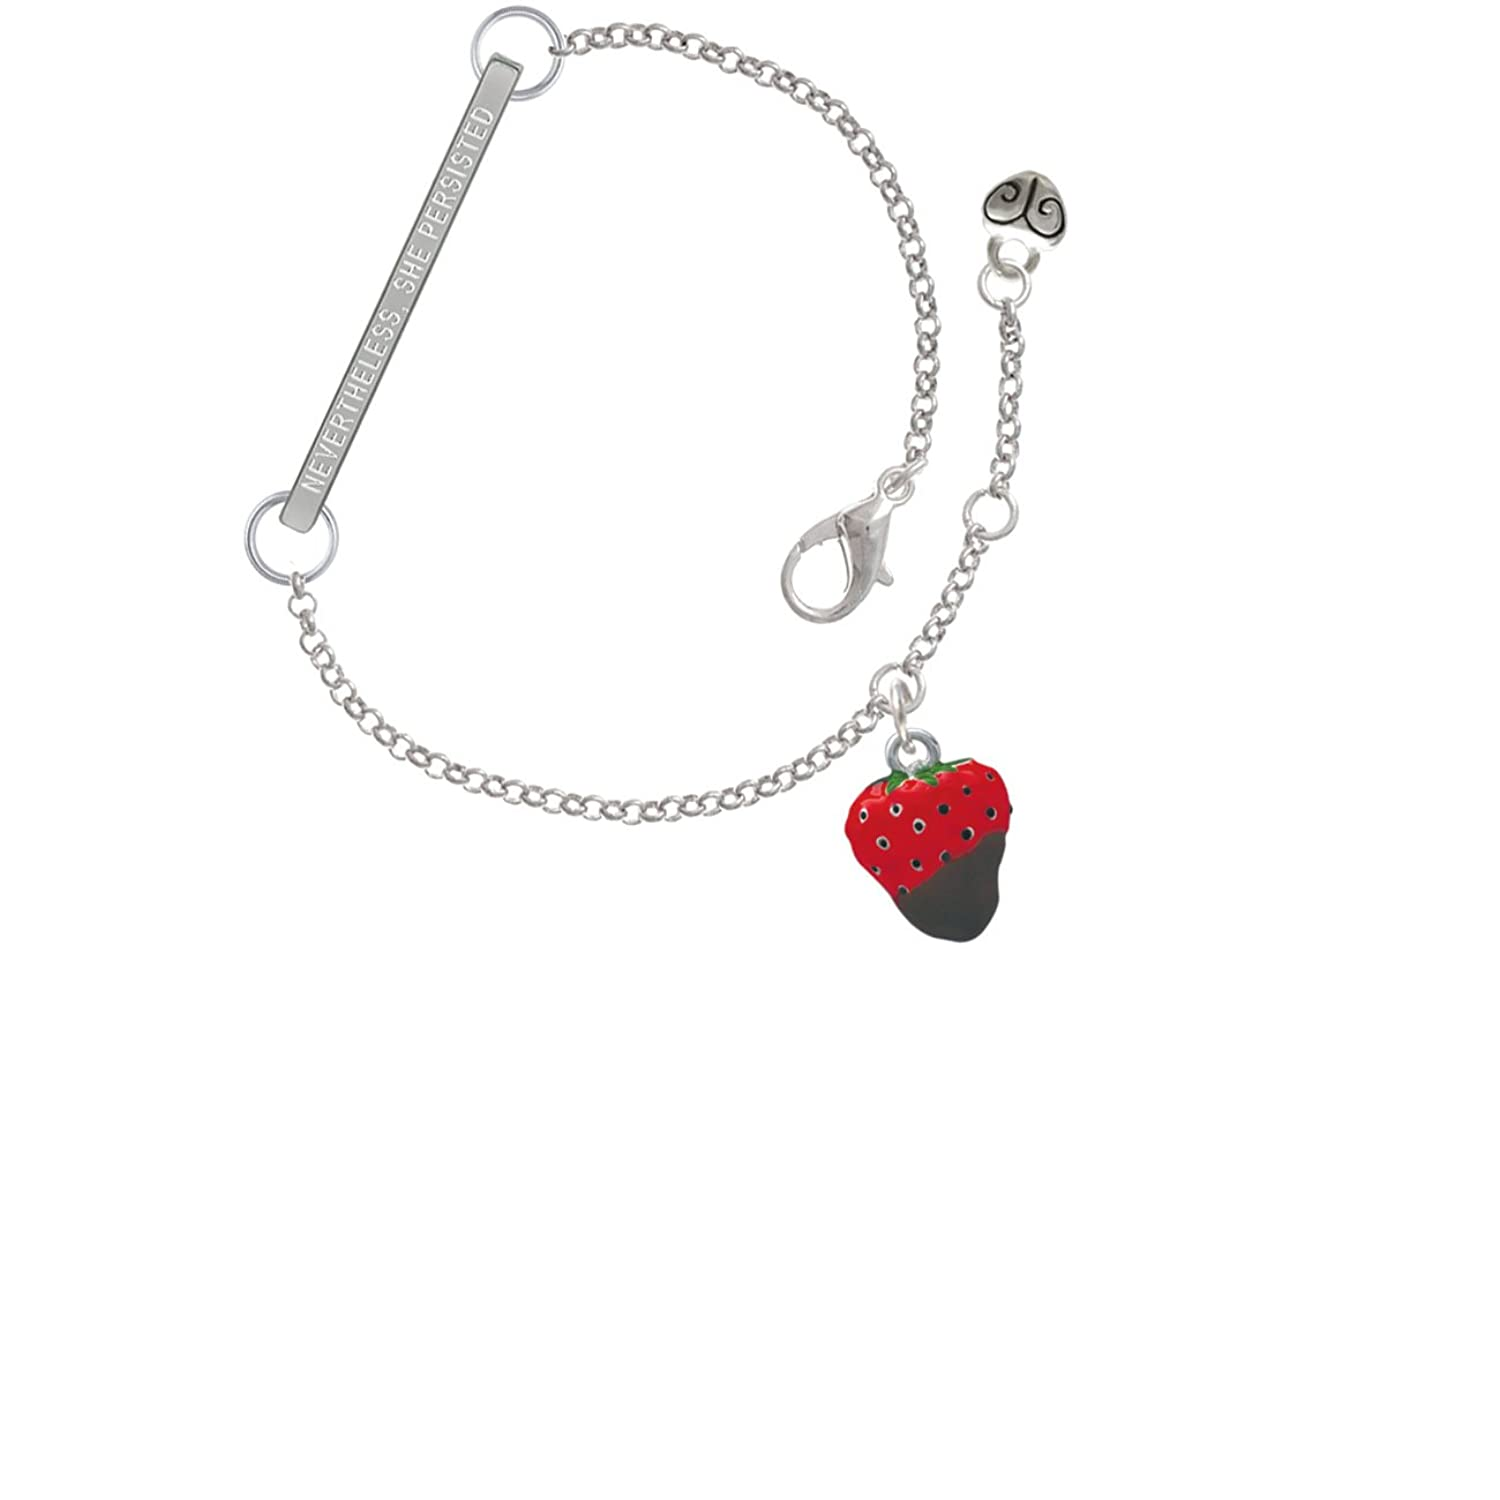 3-D Chocolate Dipped Strawberry Nevertheless She Persisted Delicate Bar Bracelet